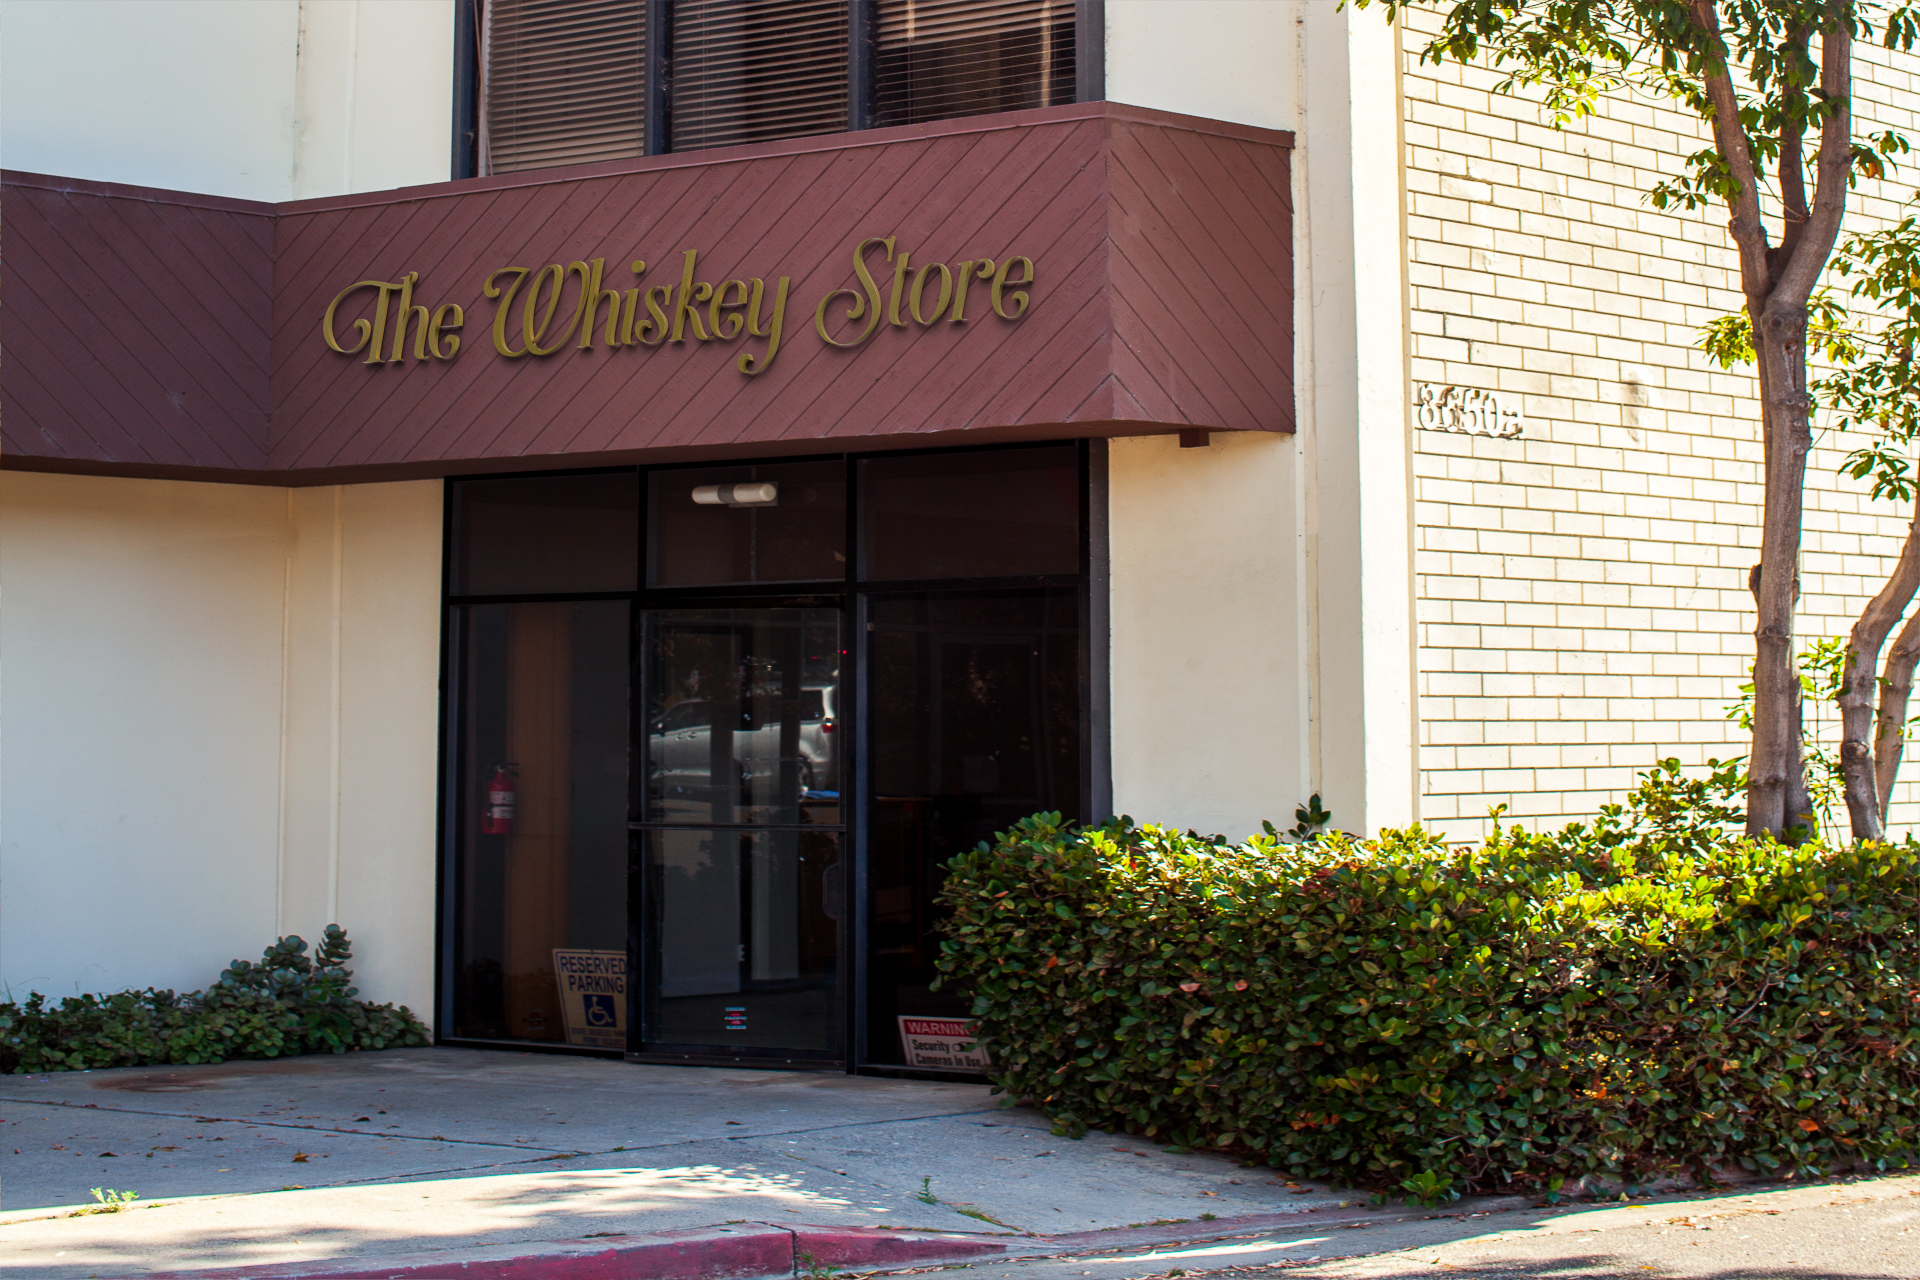 The Whiskey Store located at 8650 Hayden Pl. Culver City, CA 90232